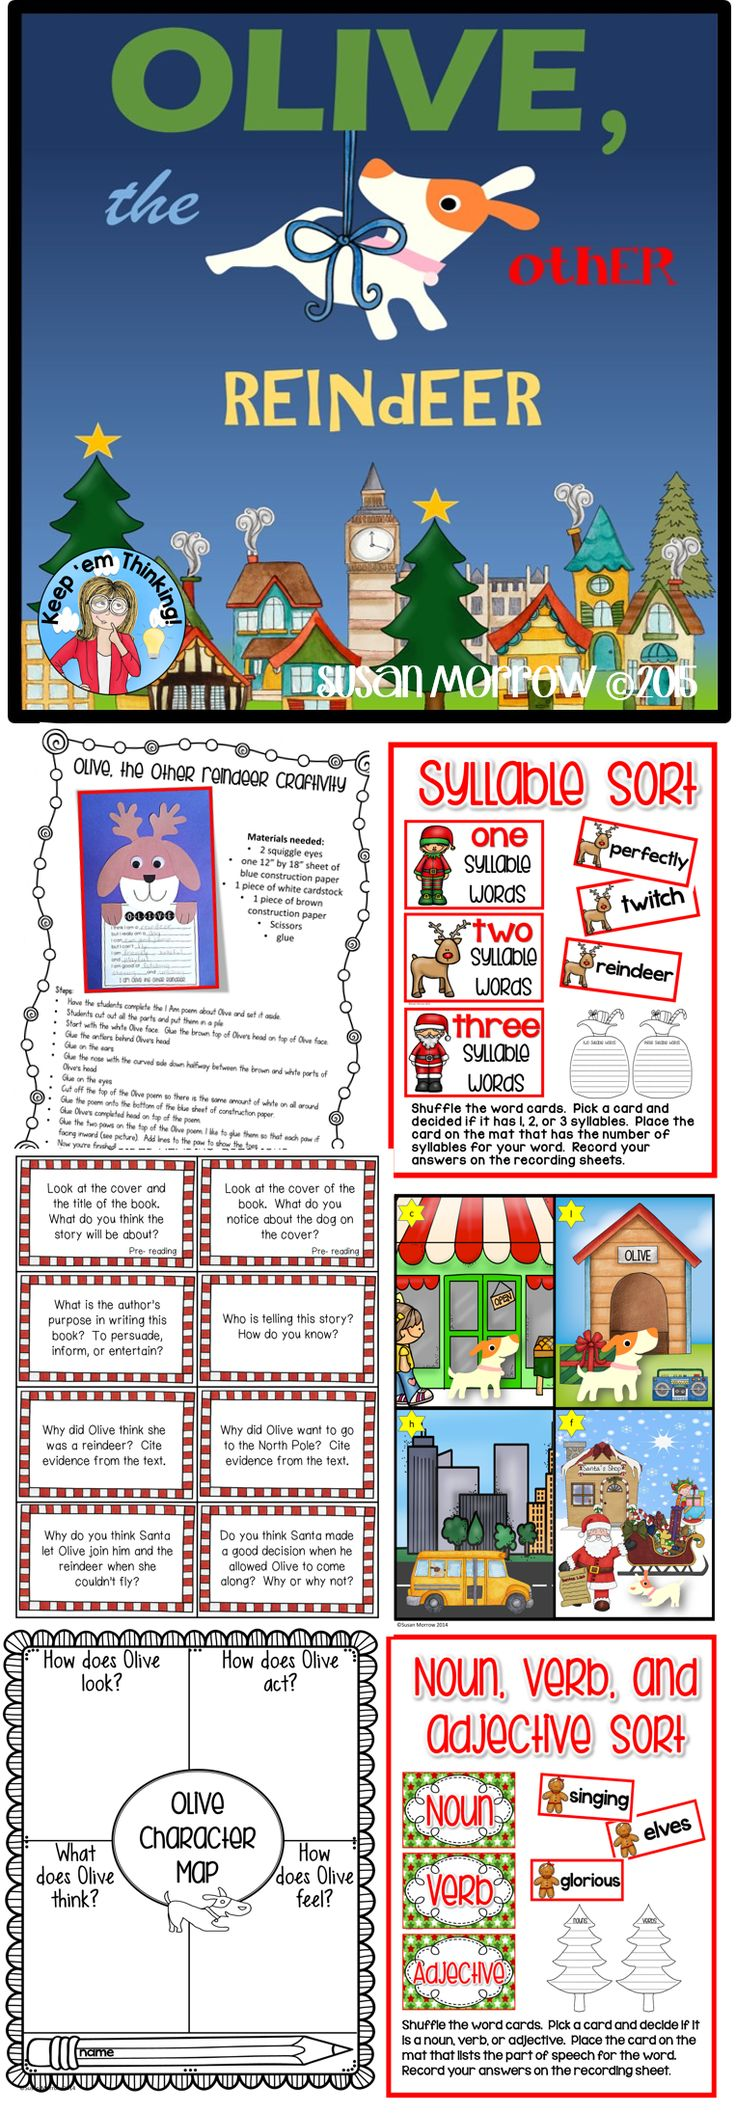 This Olive, The Other Reindeer Literature Guide, is filled with fun activities to accompany the book!